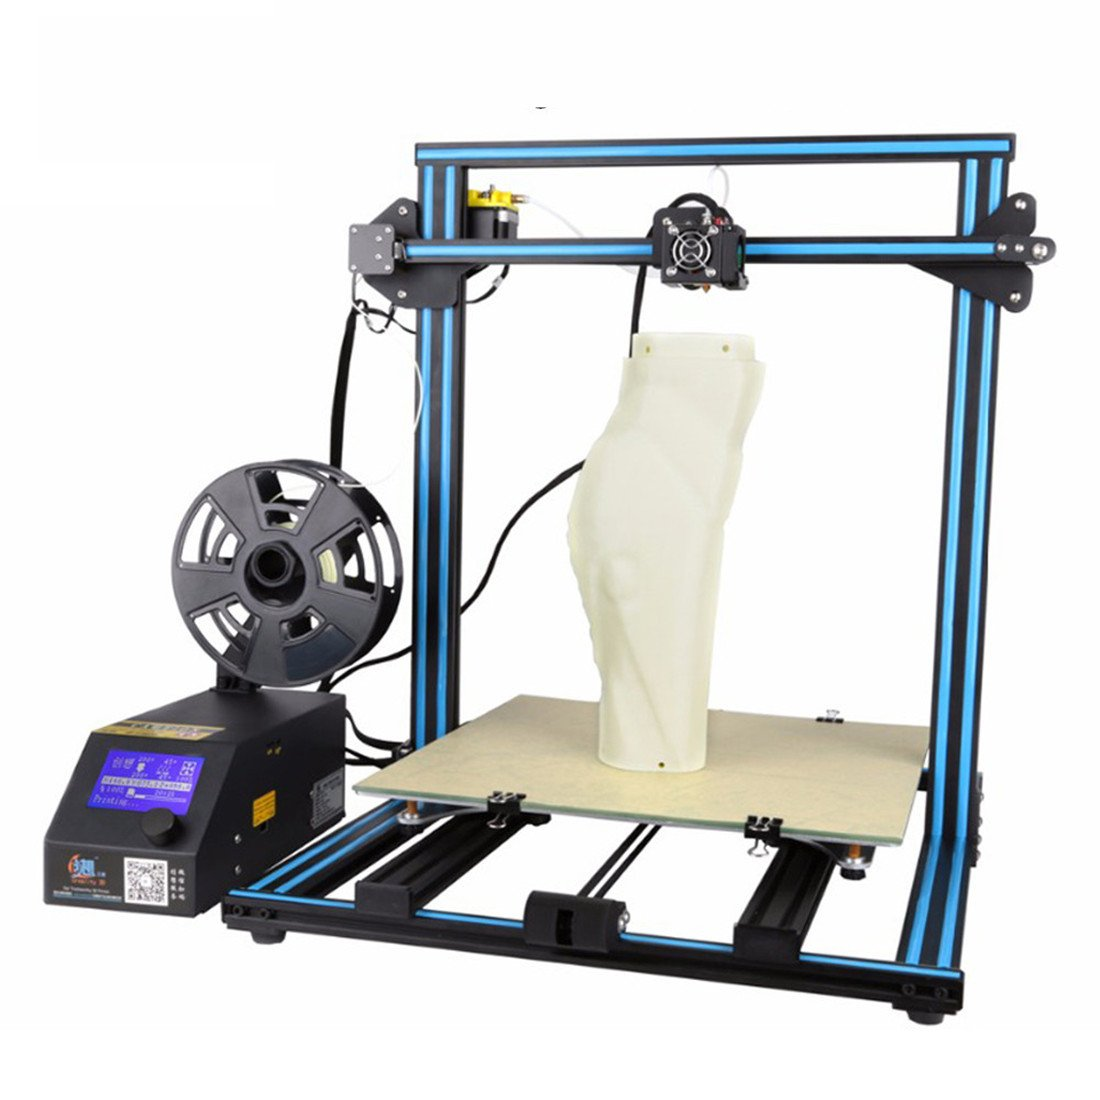 3D Printer Creality CR 10 Blue 3D Printer 300×300×400mm Large Building Volume 0.05mm Cura PLA Free Filament & Tool Box